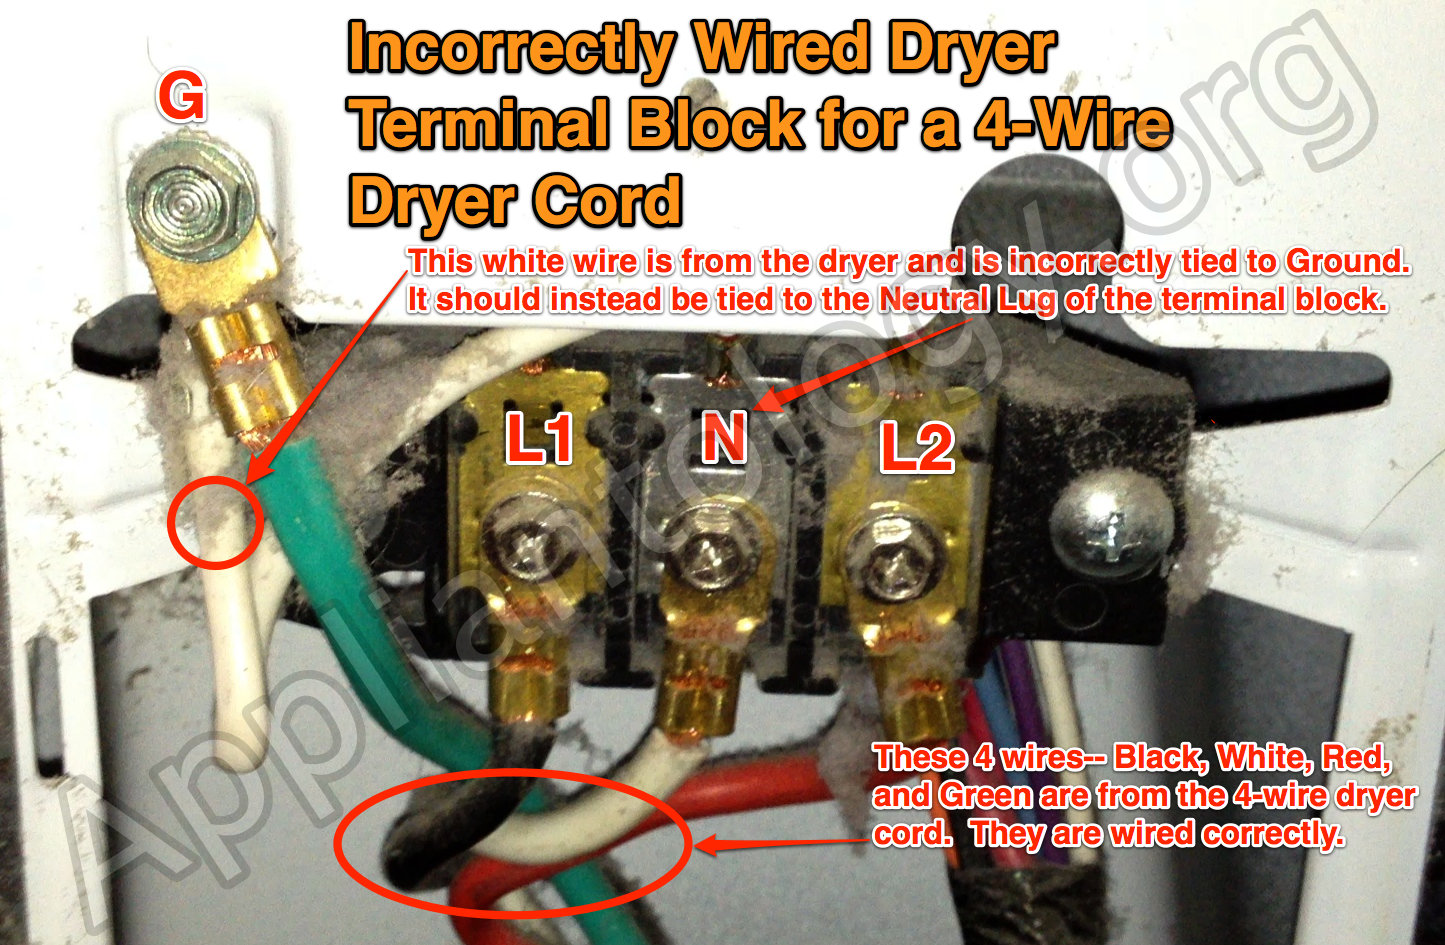 Dryer Cord Wiring Diagram Sample Basic Electrical 4 Wire Incorrectly Wired Terminal Block For A The Replacement